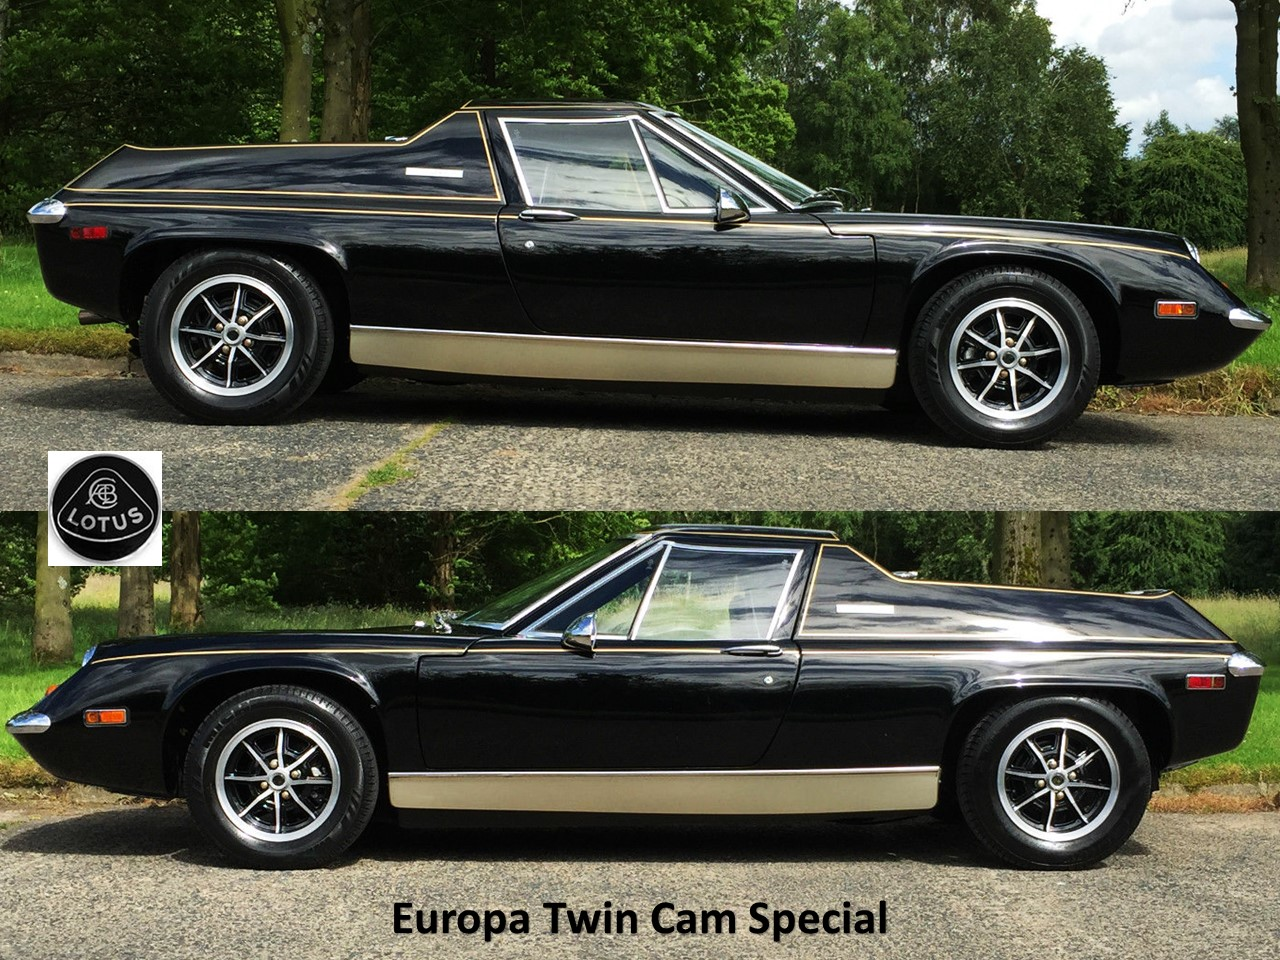 Lotus Europa Twin Cam Special | NotoriousLuxury